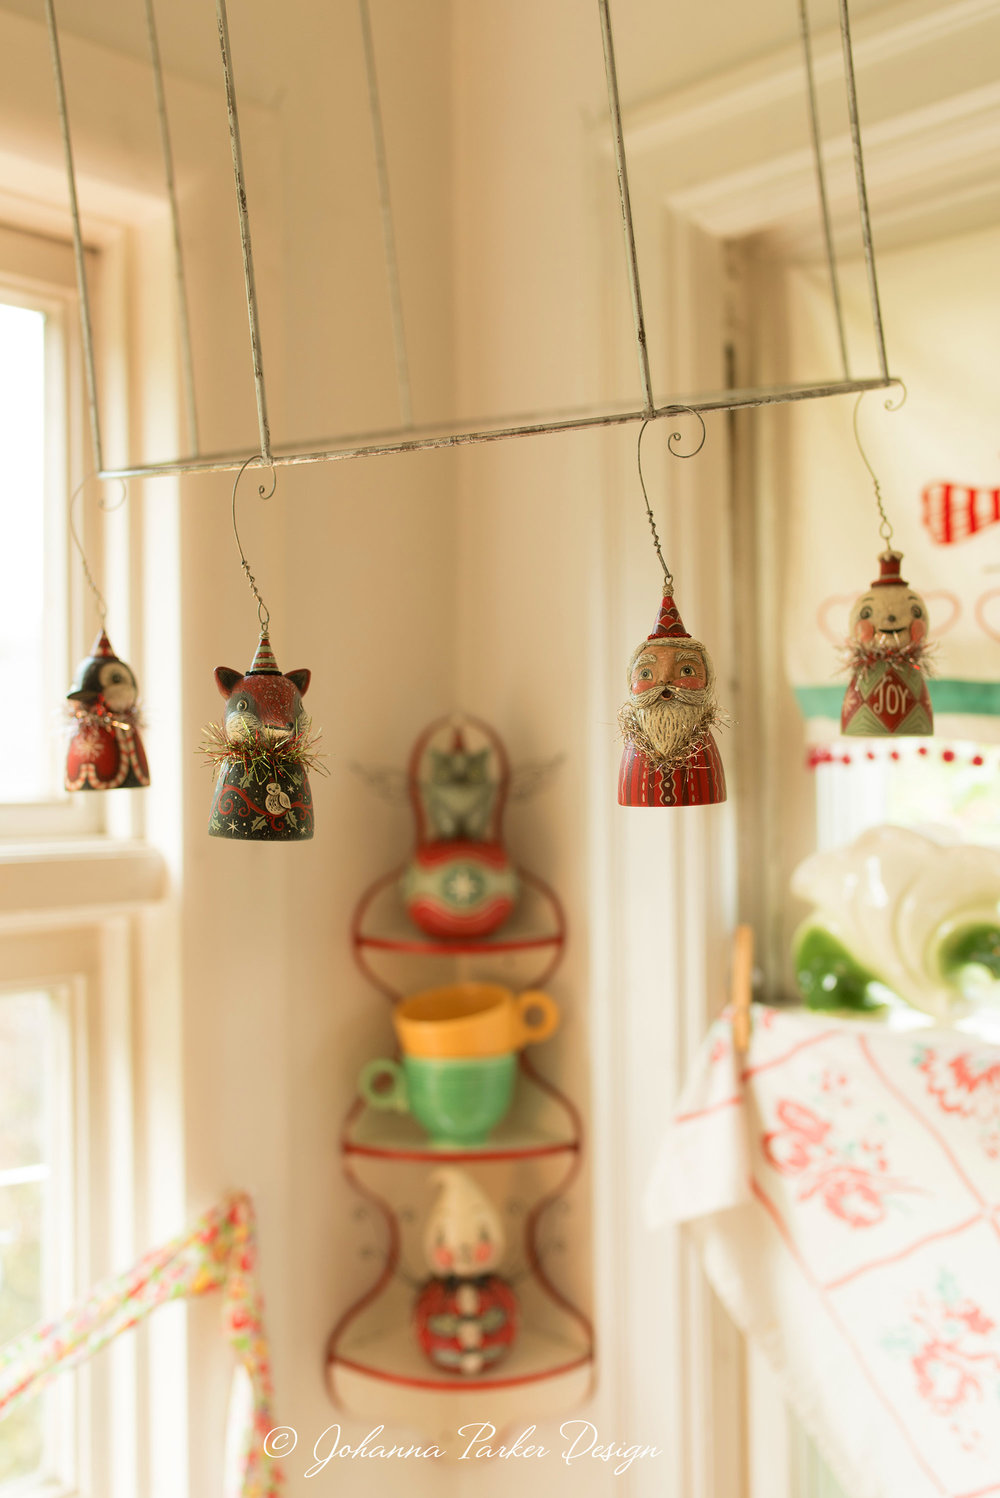 In the corner, the bare bones of an old lampshade offer easy hanging for a handful of my original ornament bell characters.